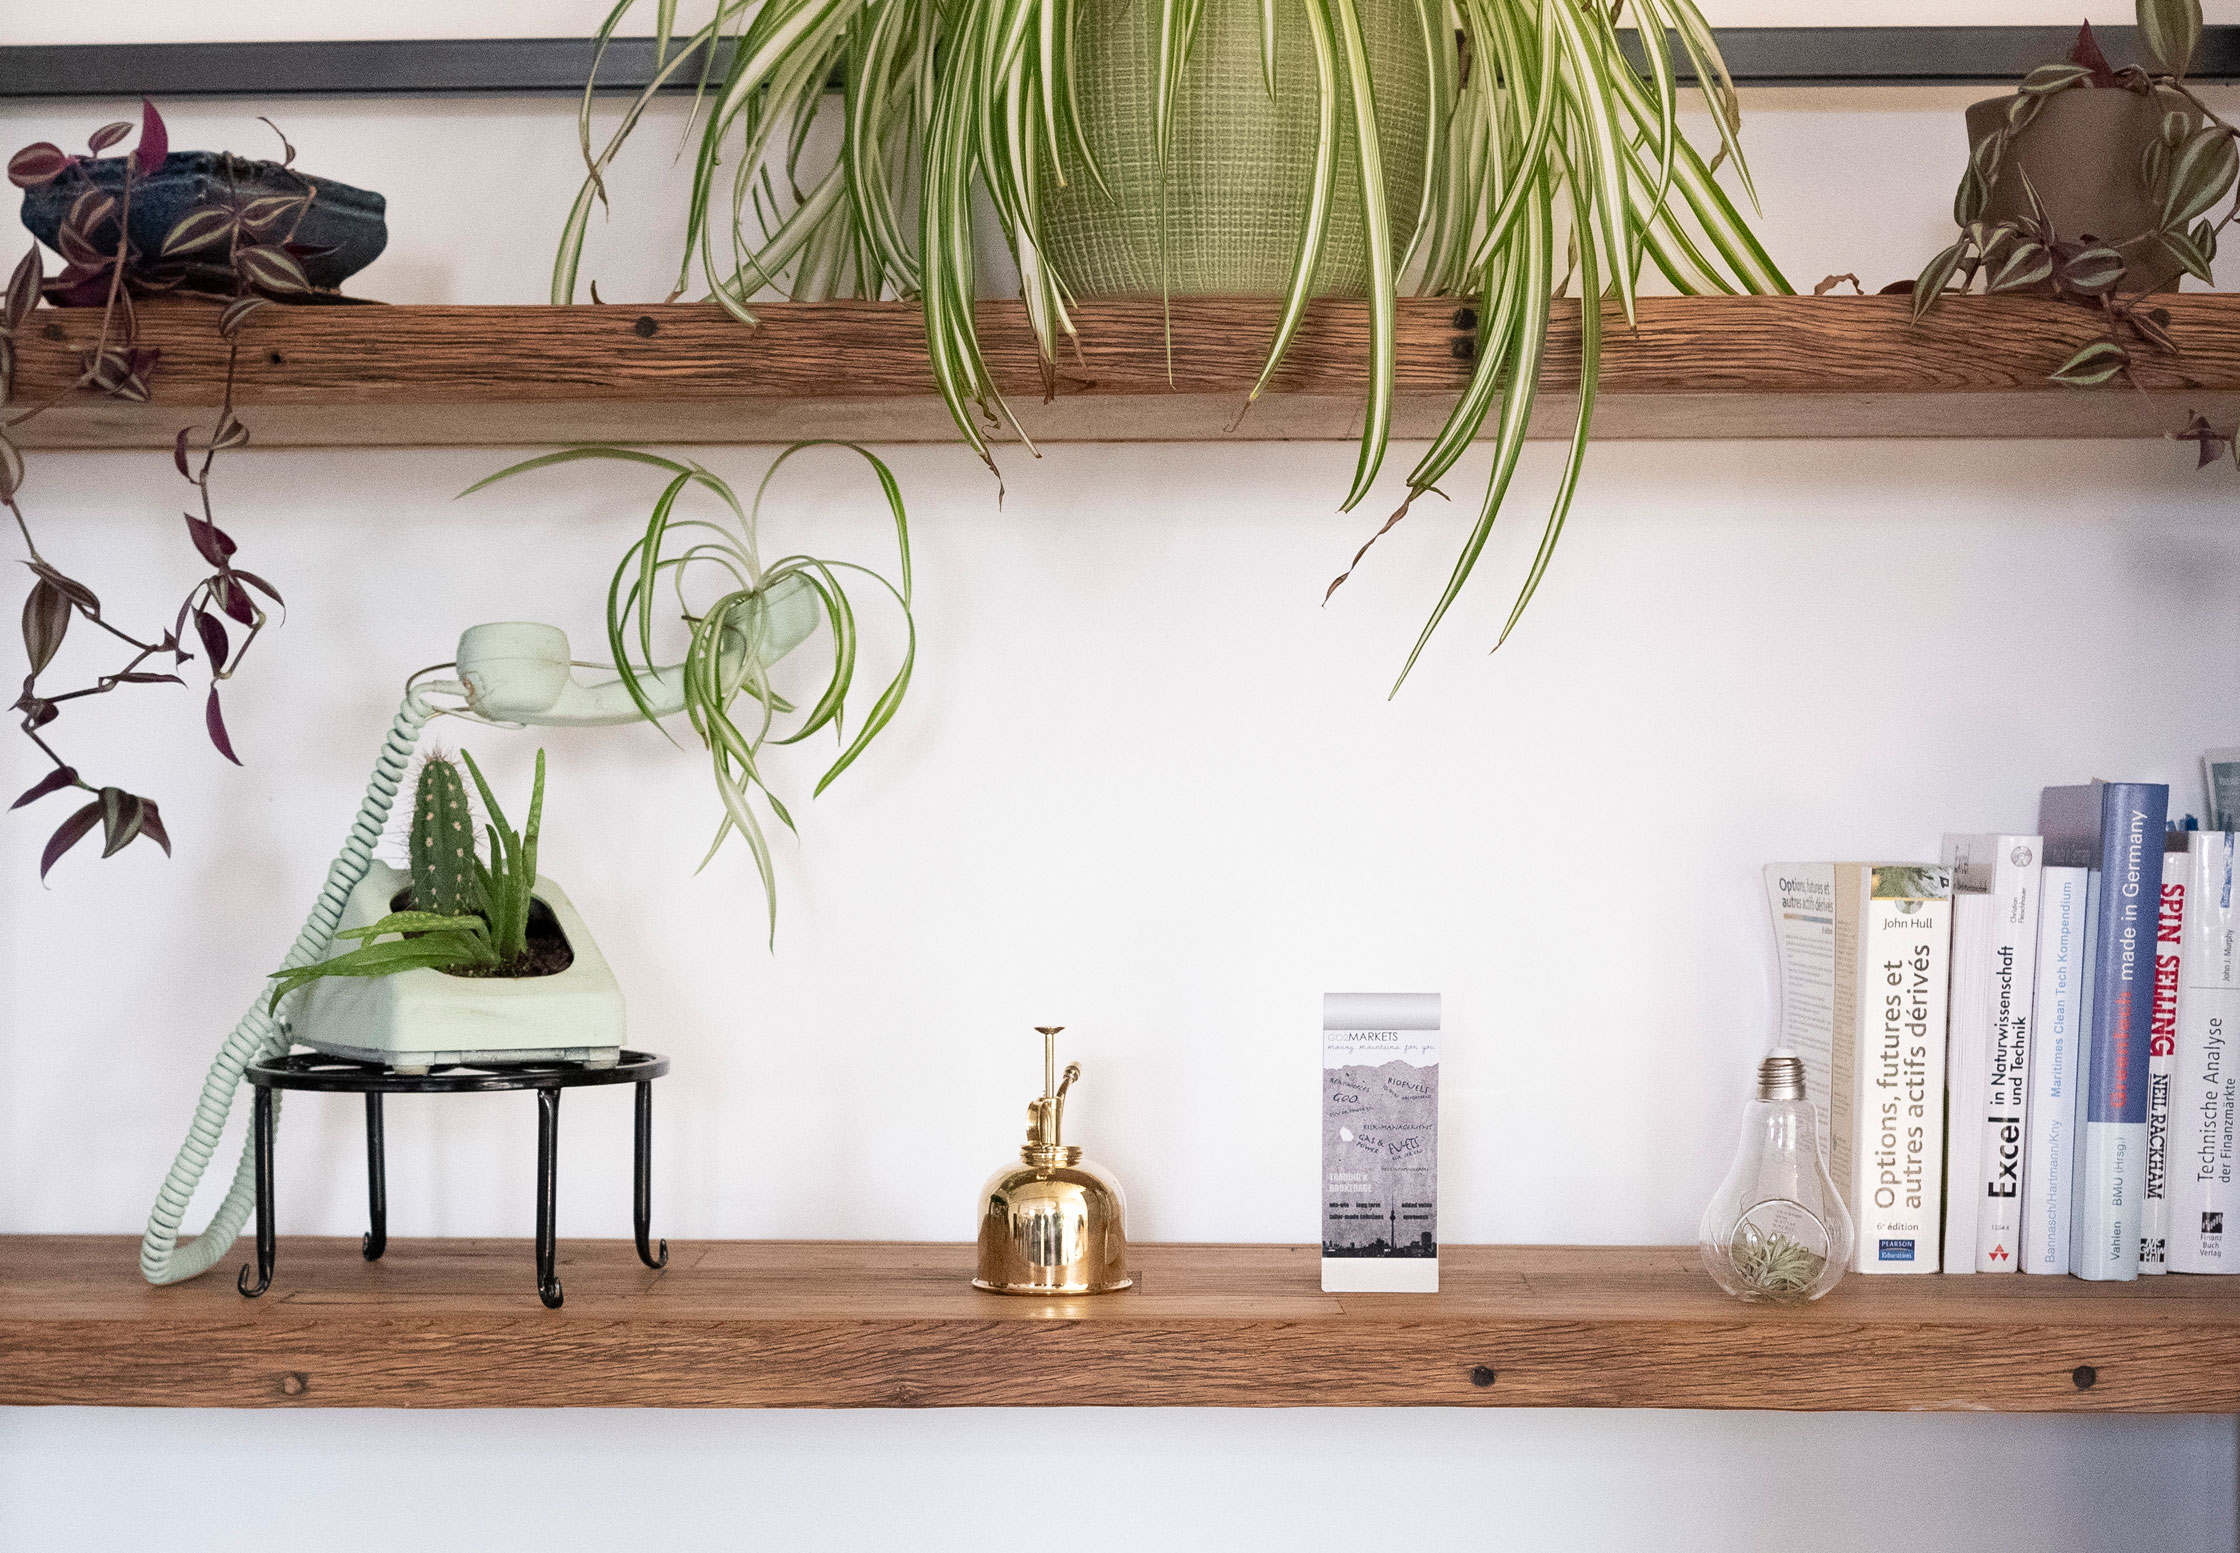 A phone, plants, books, and small decorations on a wooden shelf